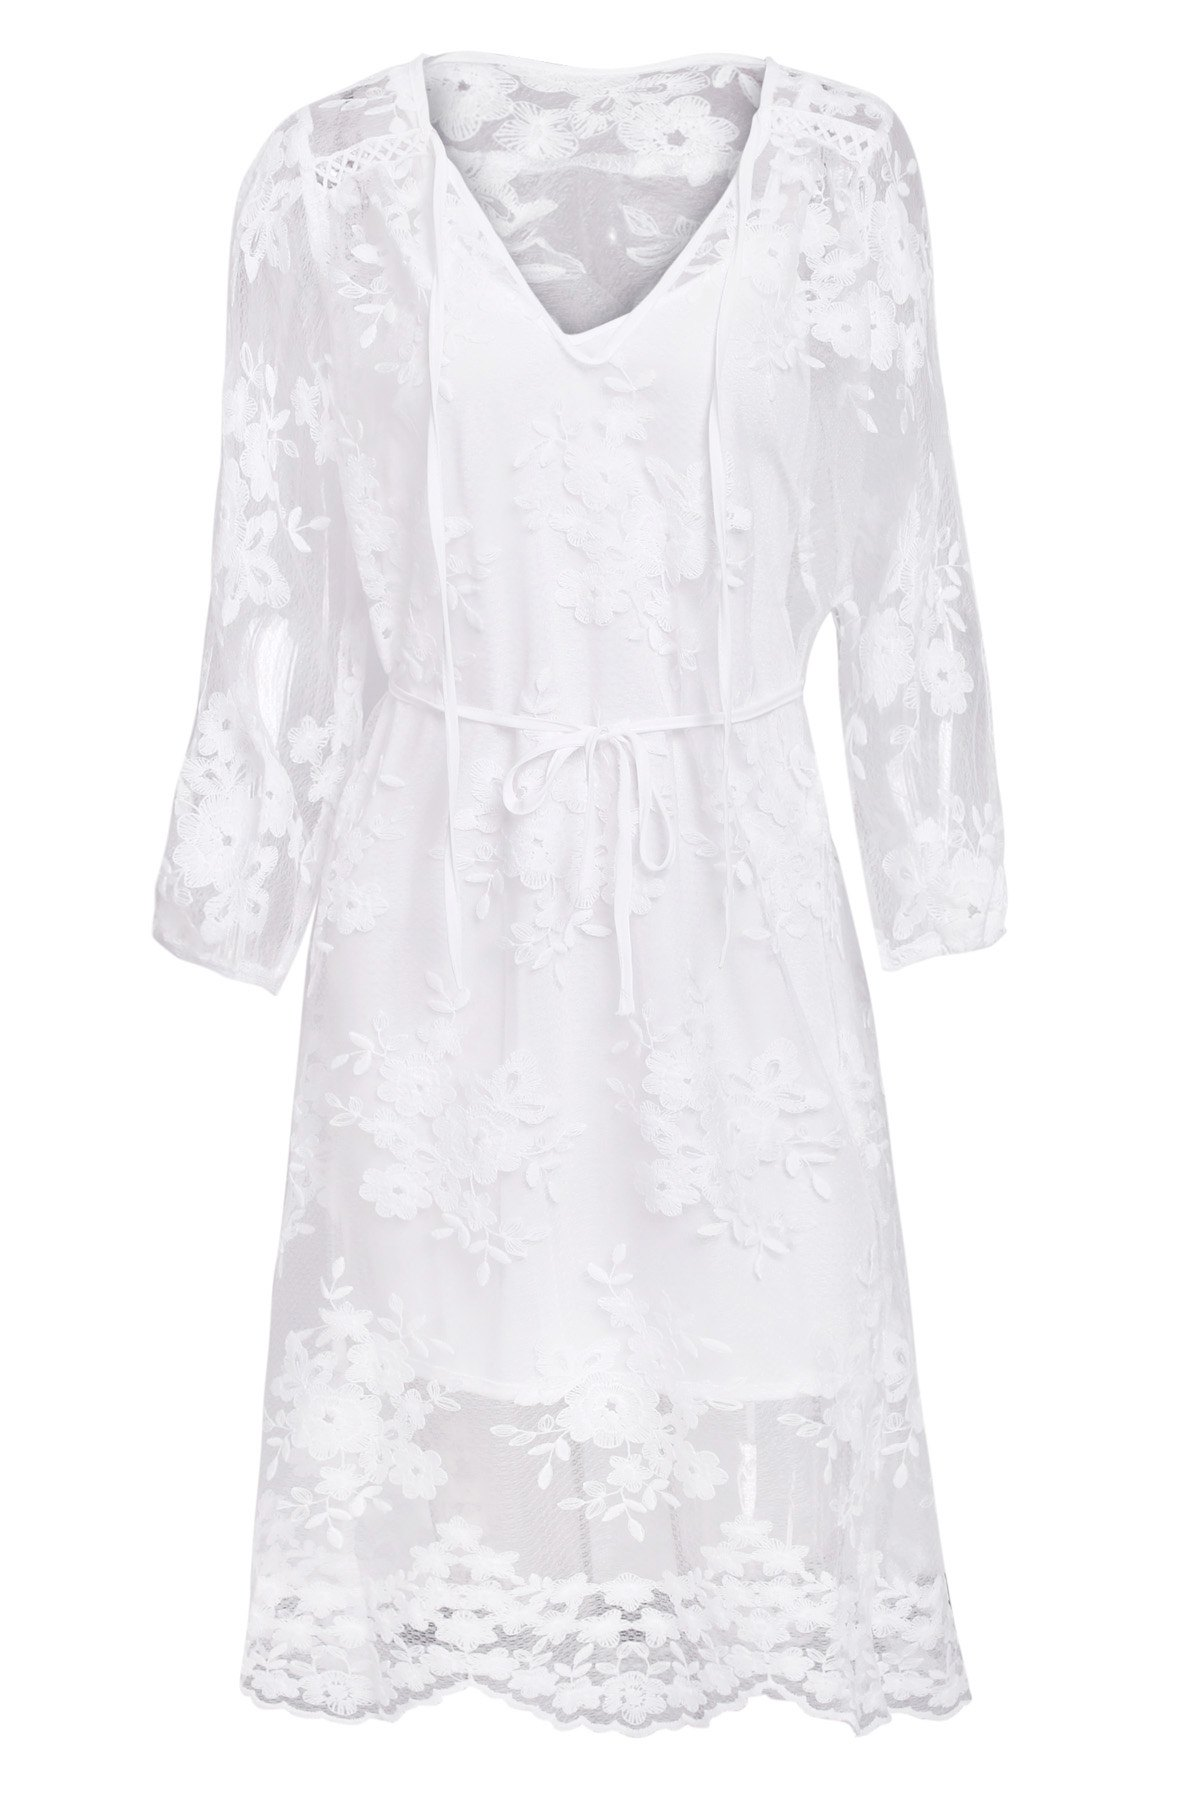 Solid Color Lace See-Through Long Sleeve Dress - WHITE S